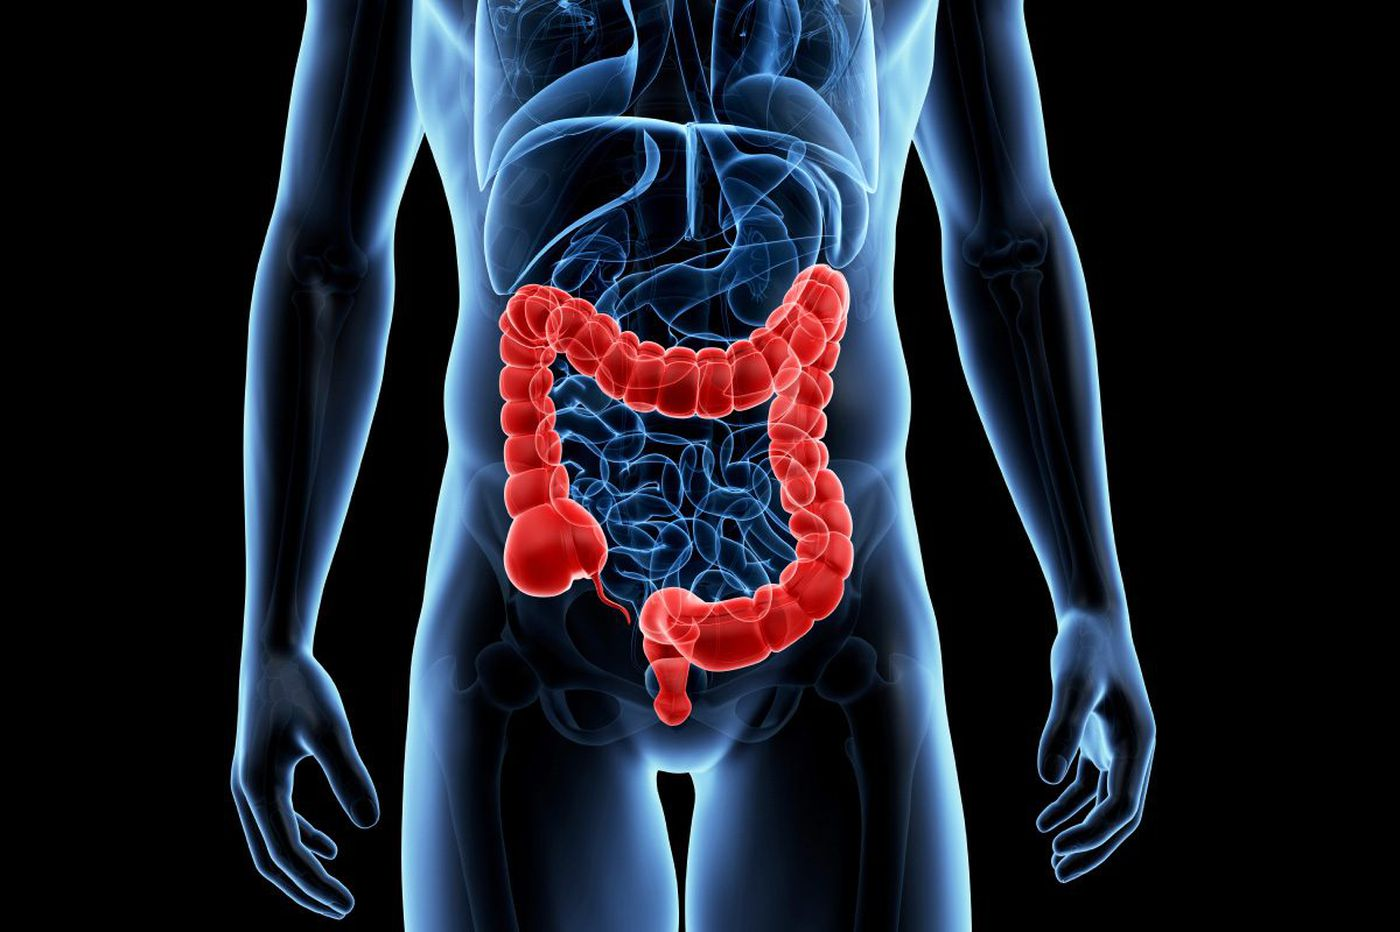 Would you take an at-home colon cancer test for $10?